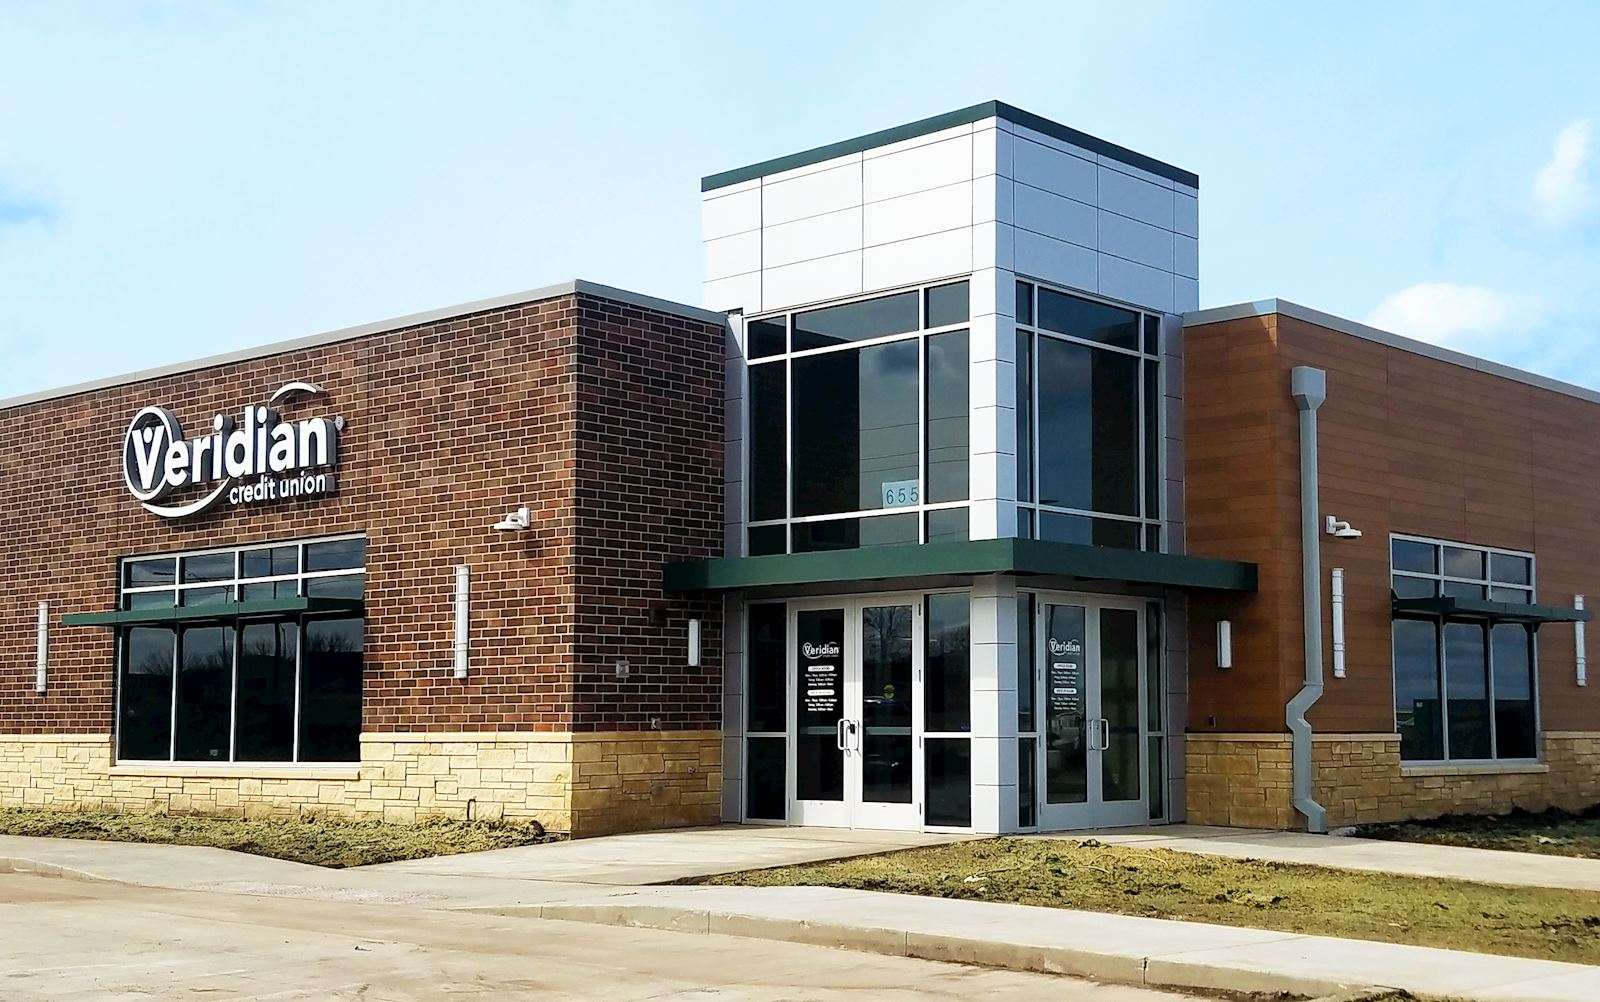 Veridian Credit Union - Waukee branch